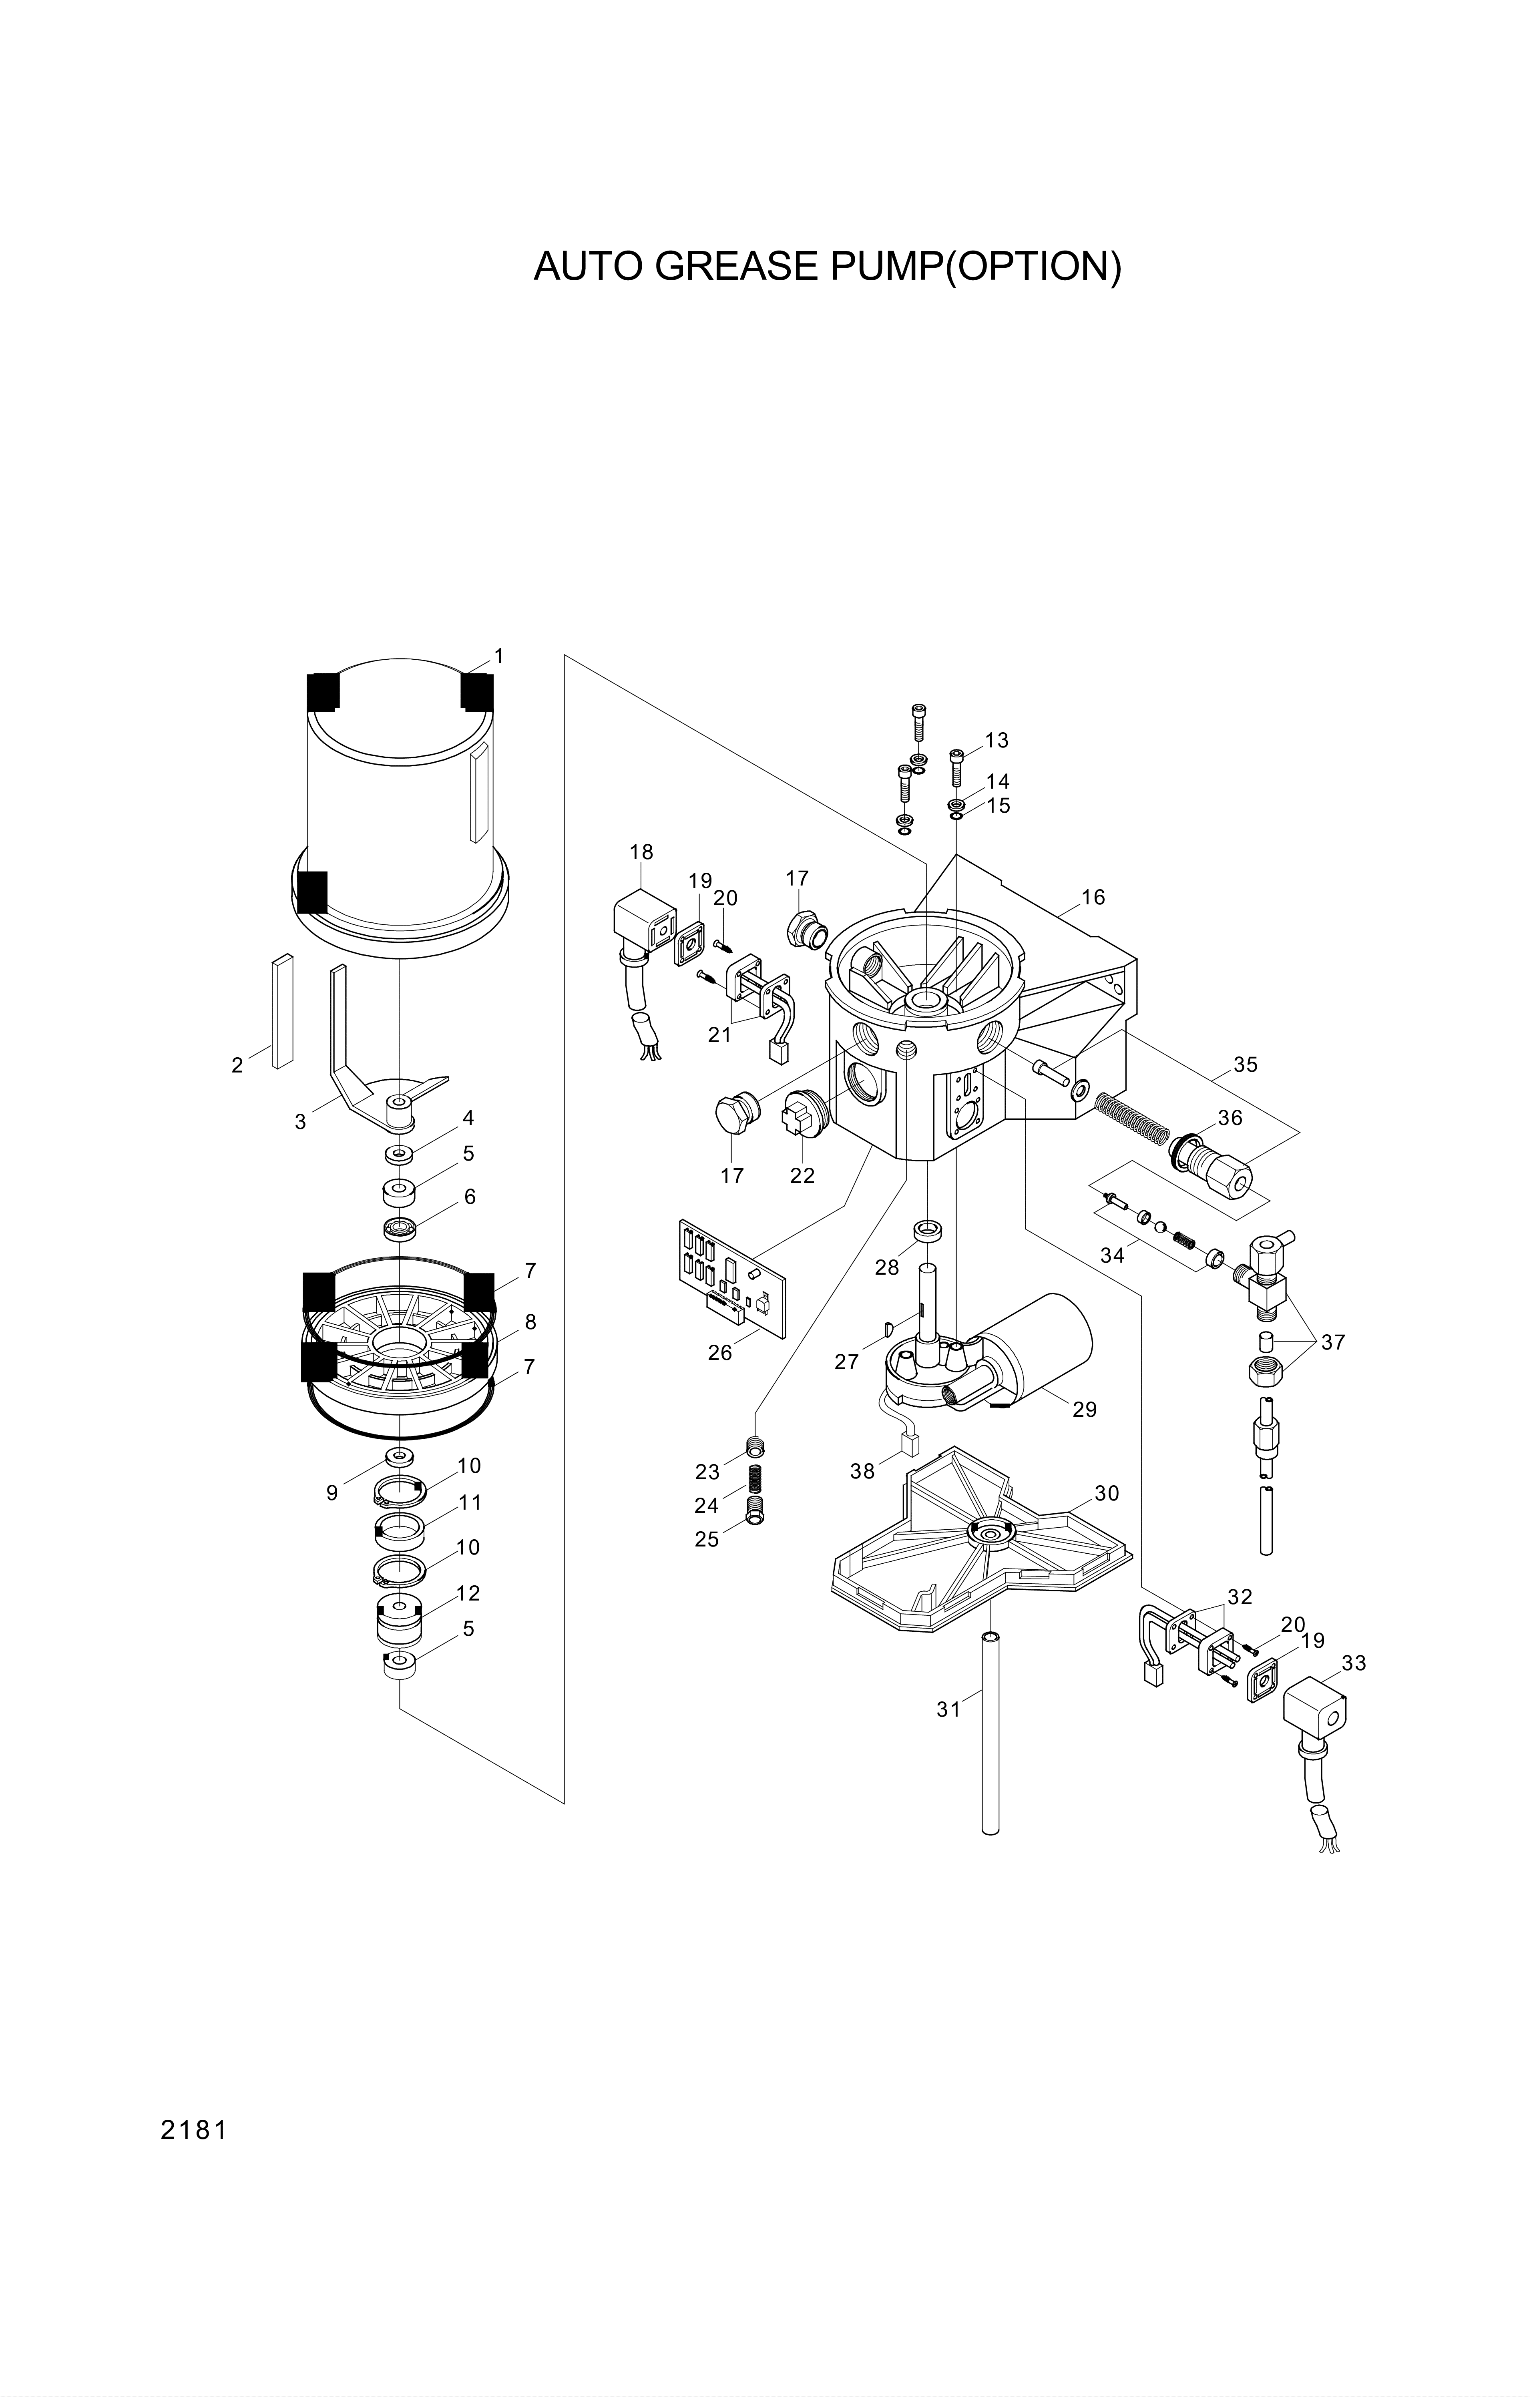 drawing for Hyundai Construction Equipment 3537-220-200K25 - PORT RELIEF VALVE